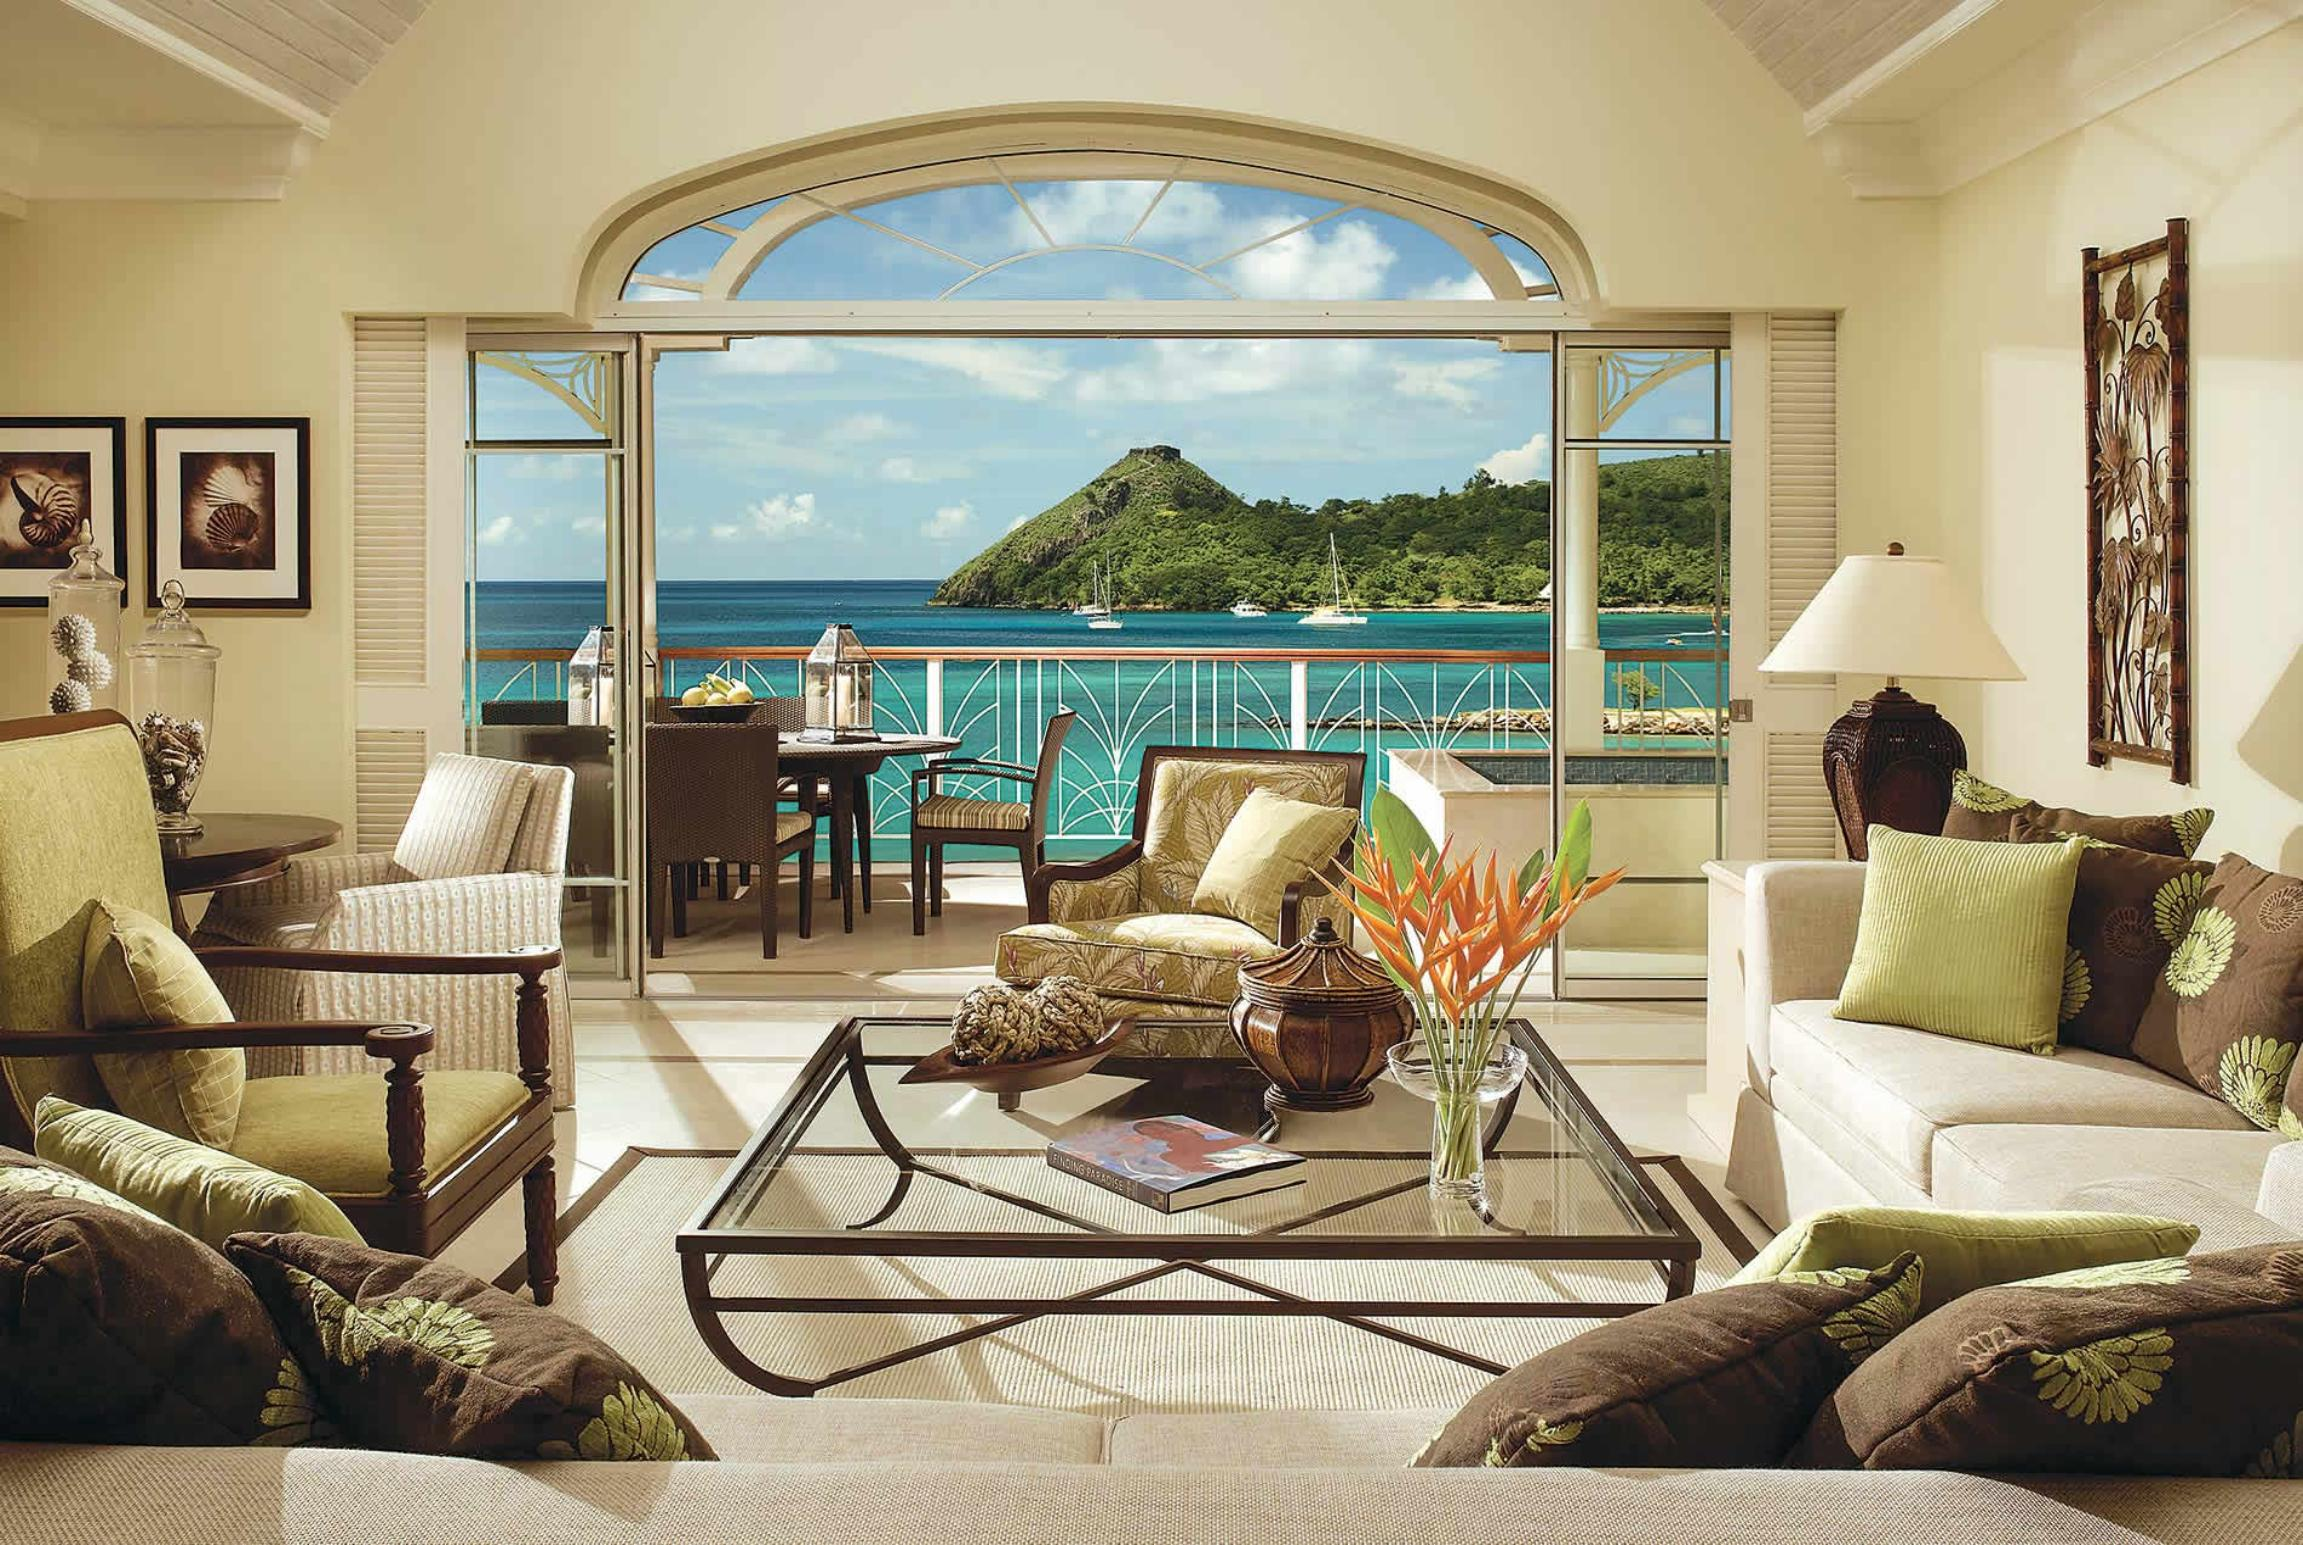 Read more about Ocean View III with Hot Tub villa